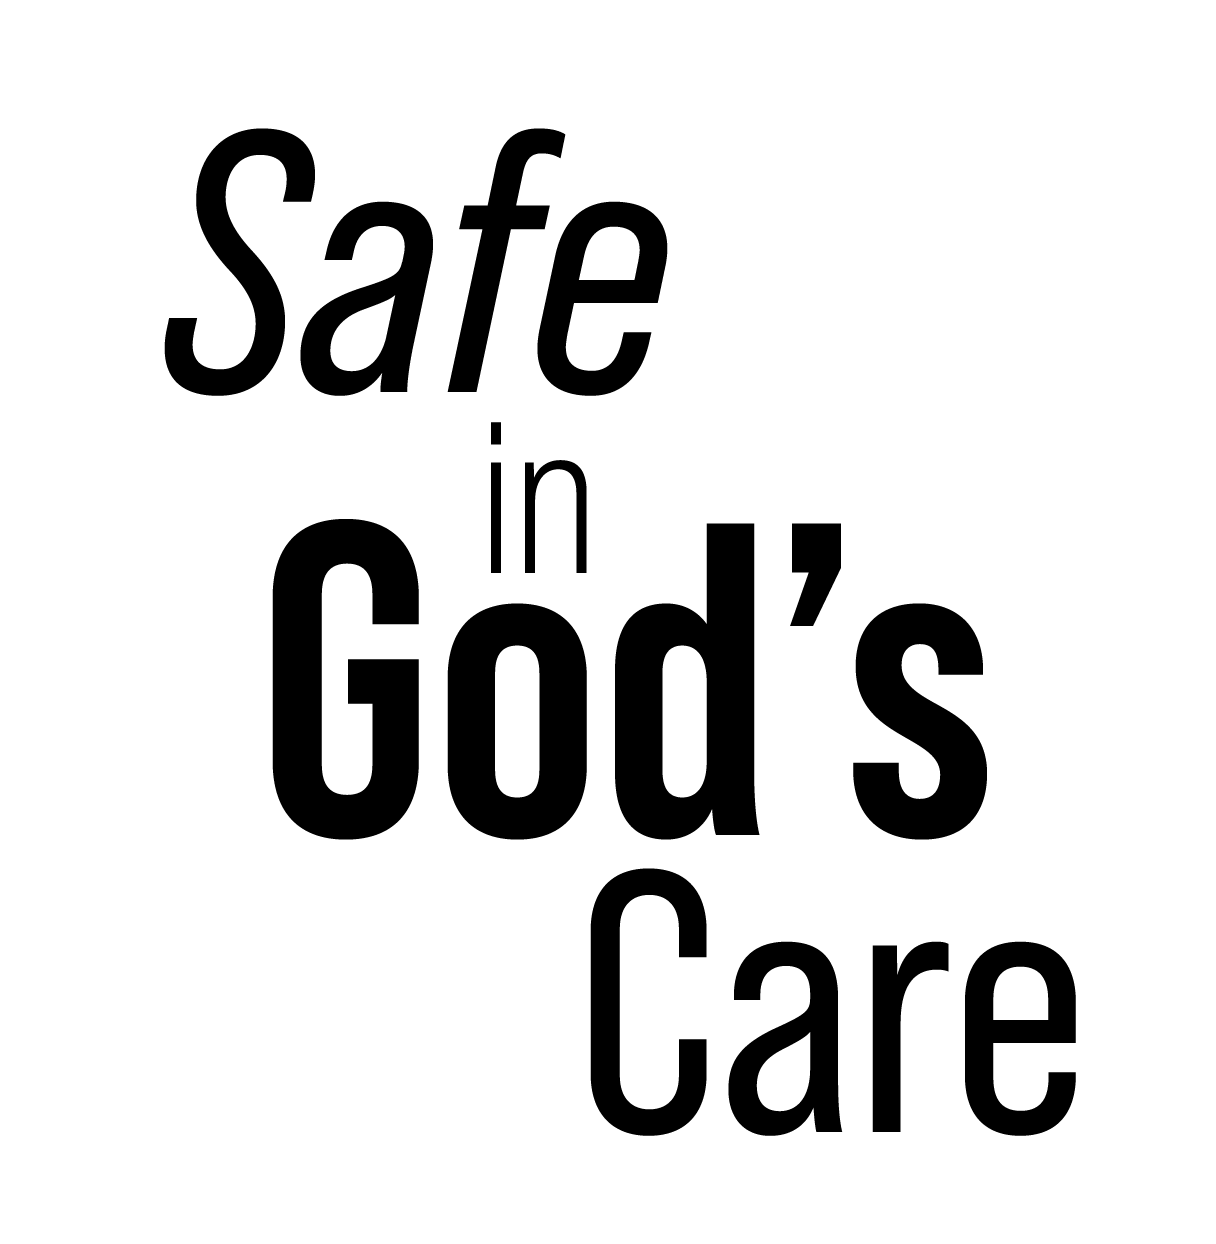 Safe In Gods Care